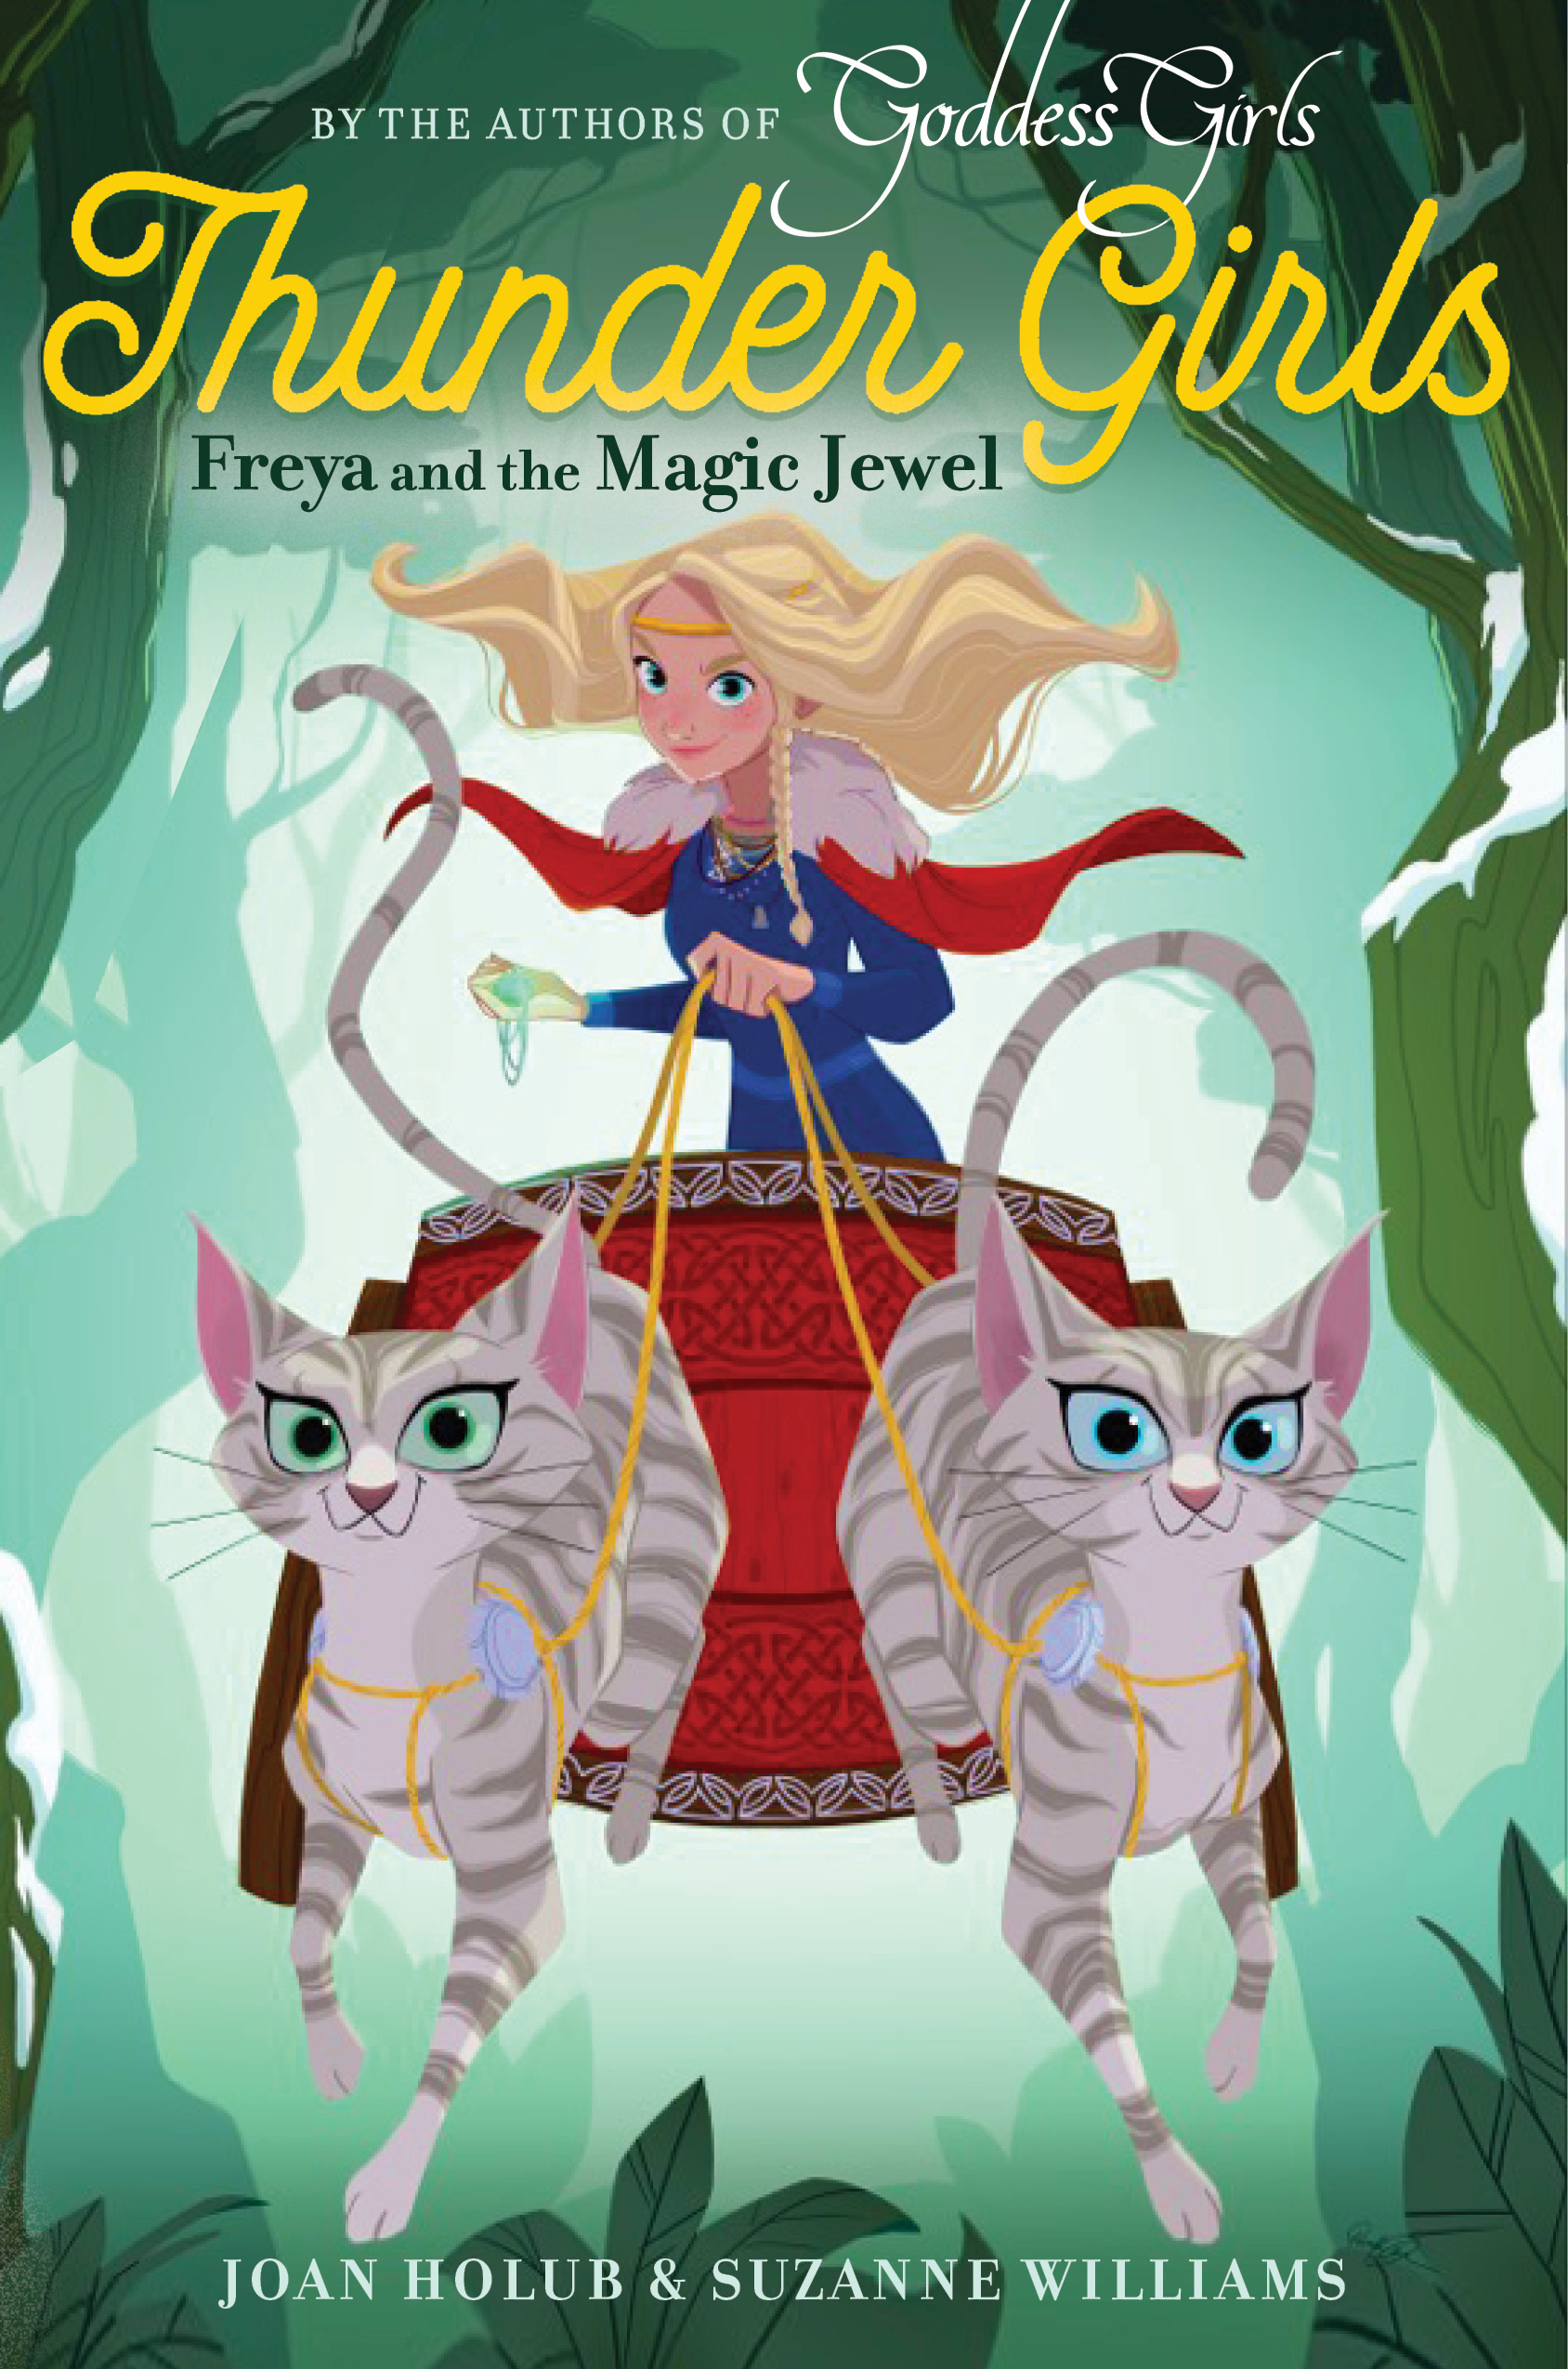 Thunder Girls Freya and the Magic Jewel Joan Holub Suzanne Williams image copy.jpg